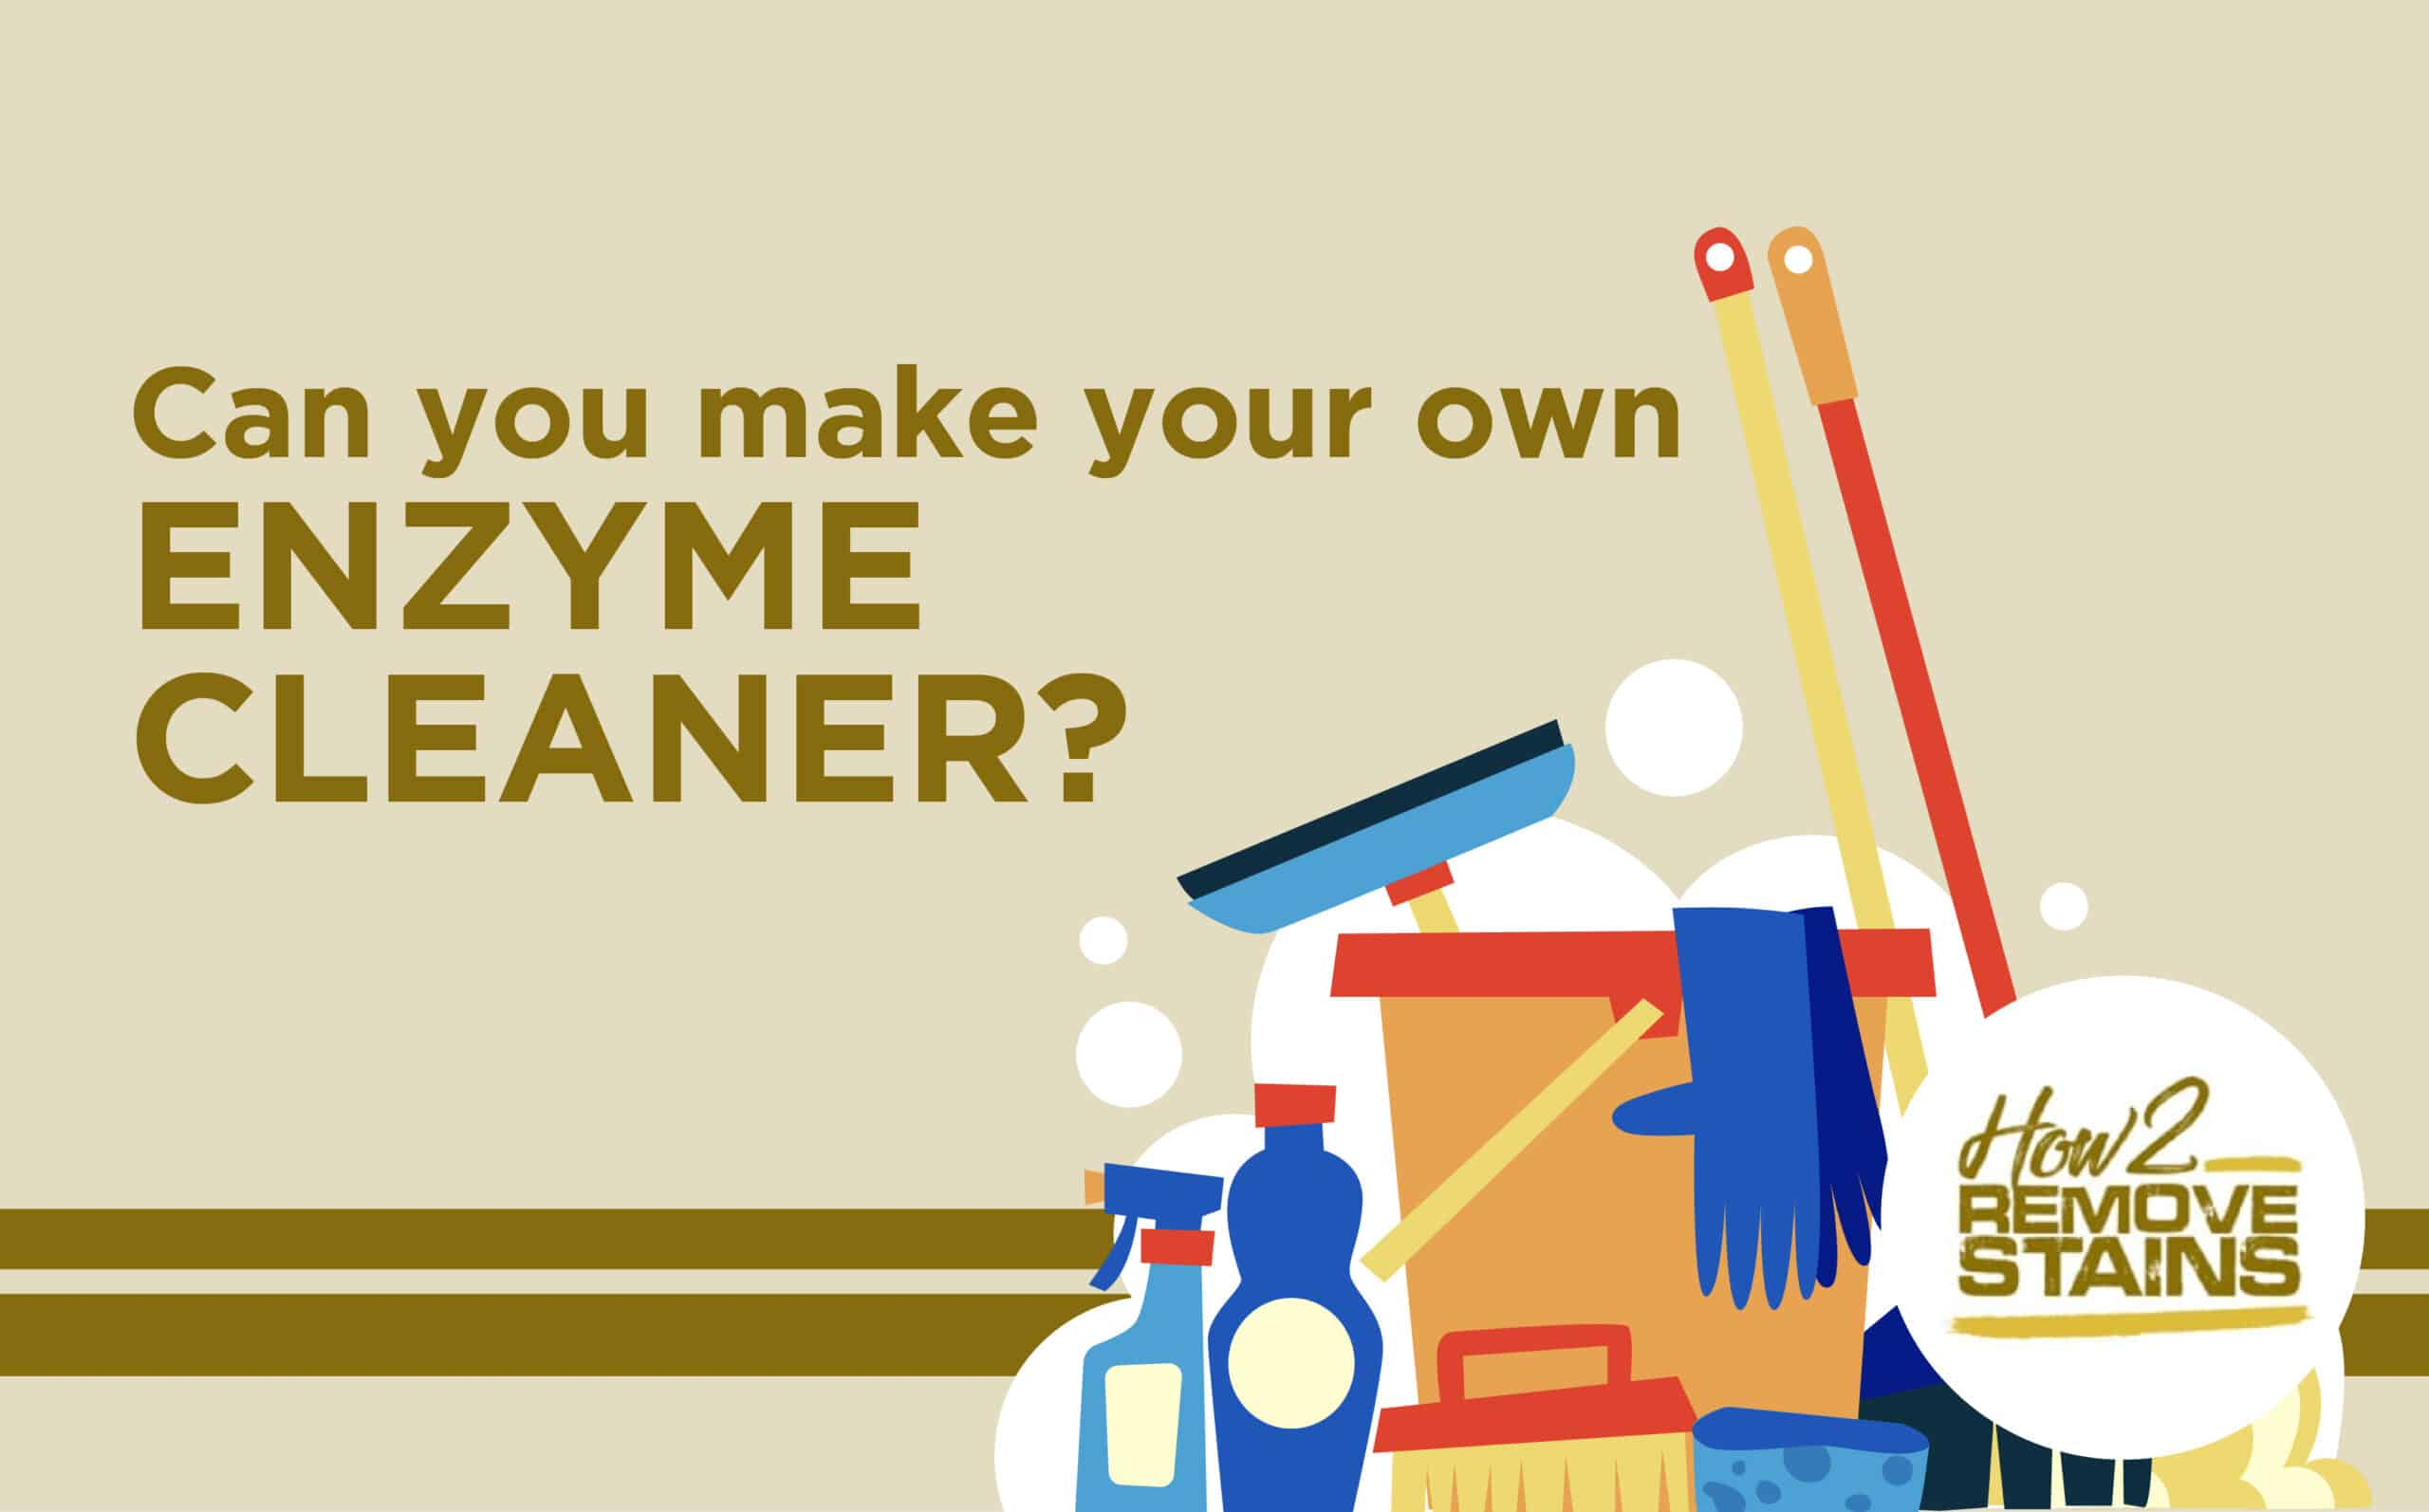 Can you make your own enzyme cleaner